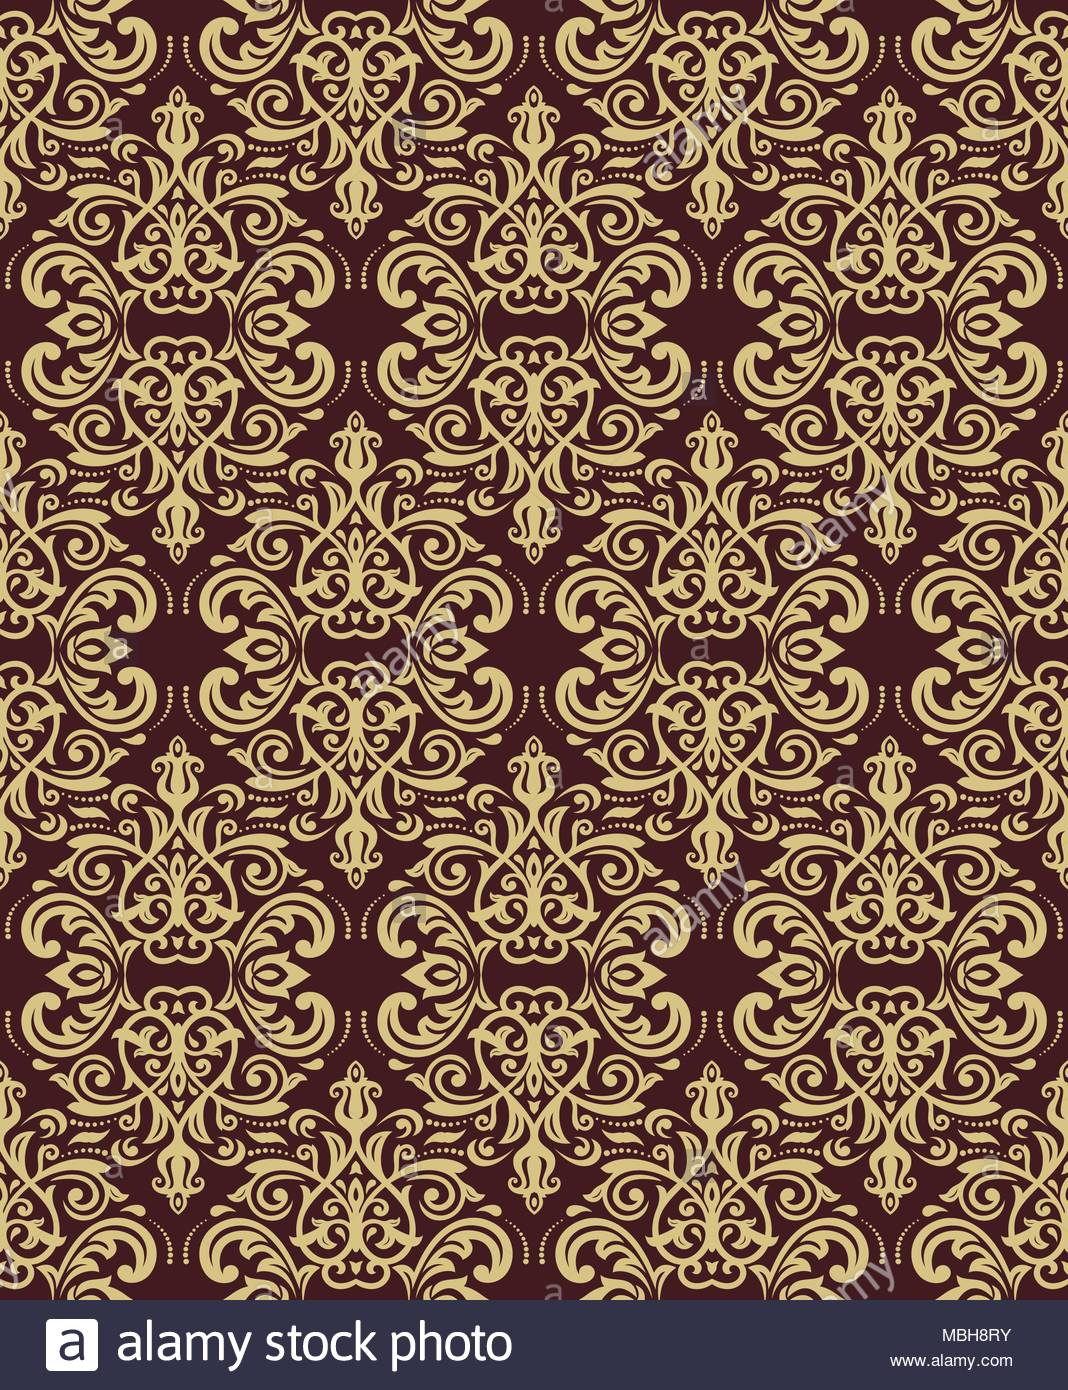 Classic seamless vector pattern Damask orient brown and golden 1068x1390